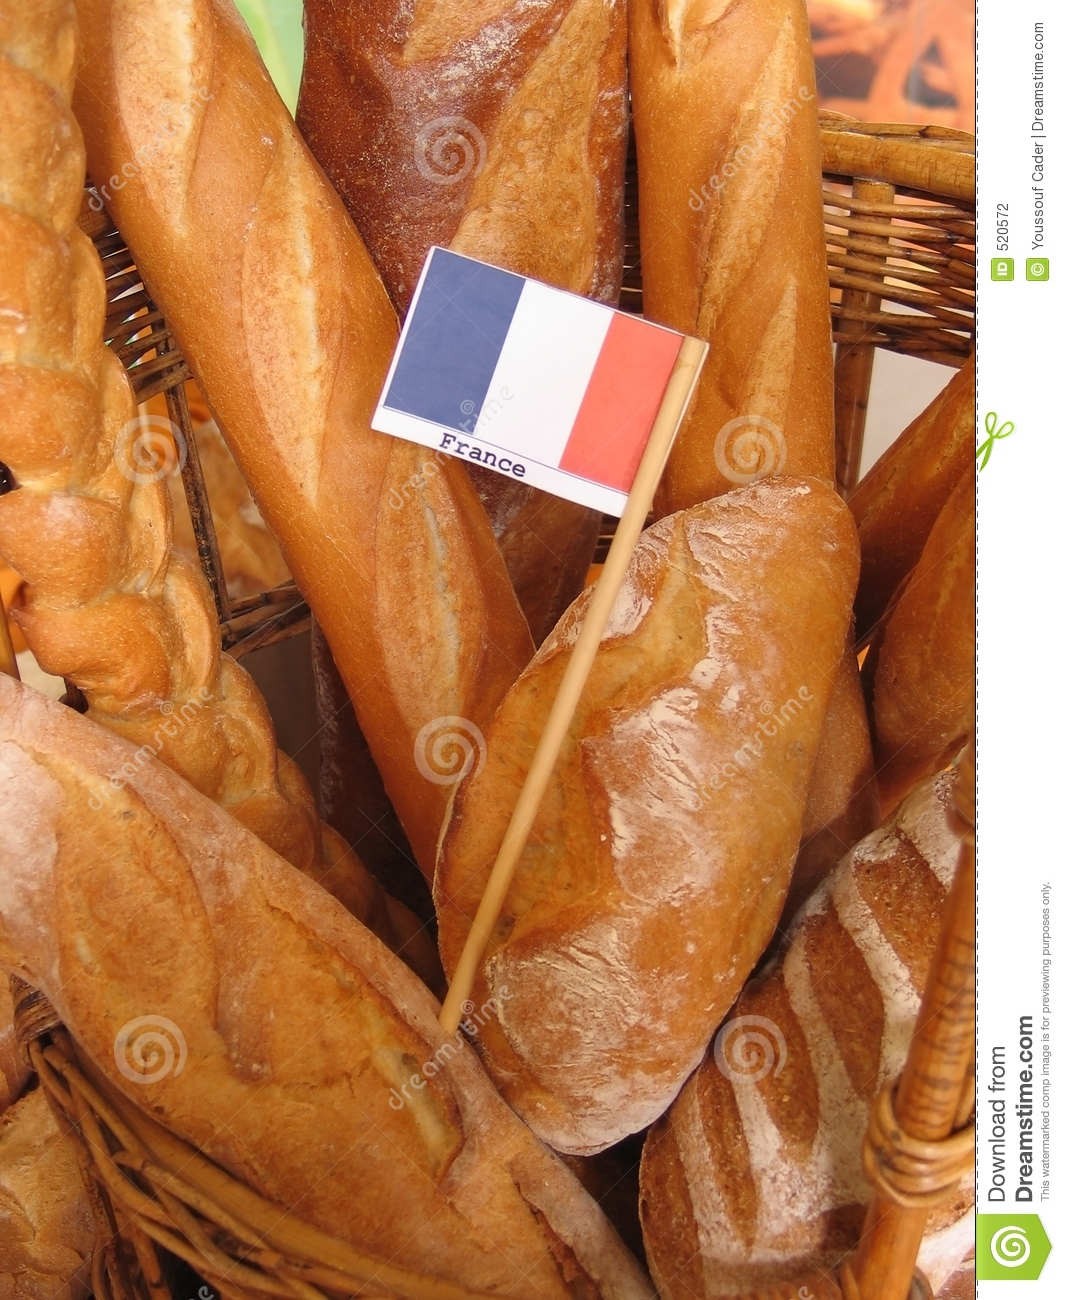 baguettes french baguettes easy baguettes from pamela s bread mix ...